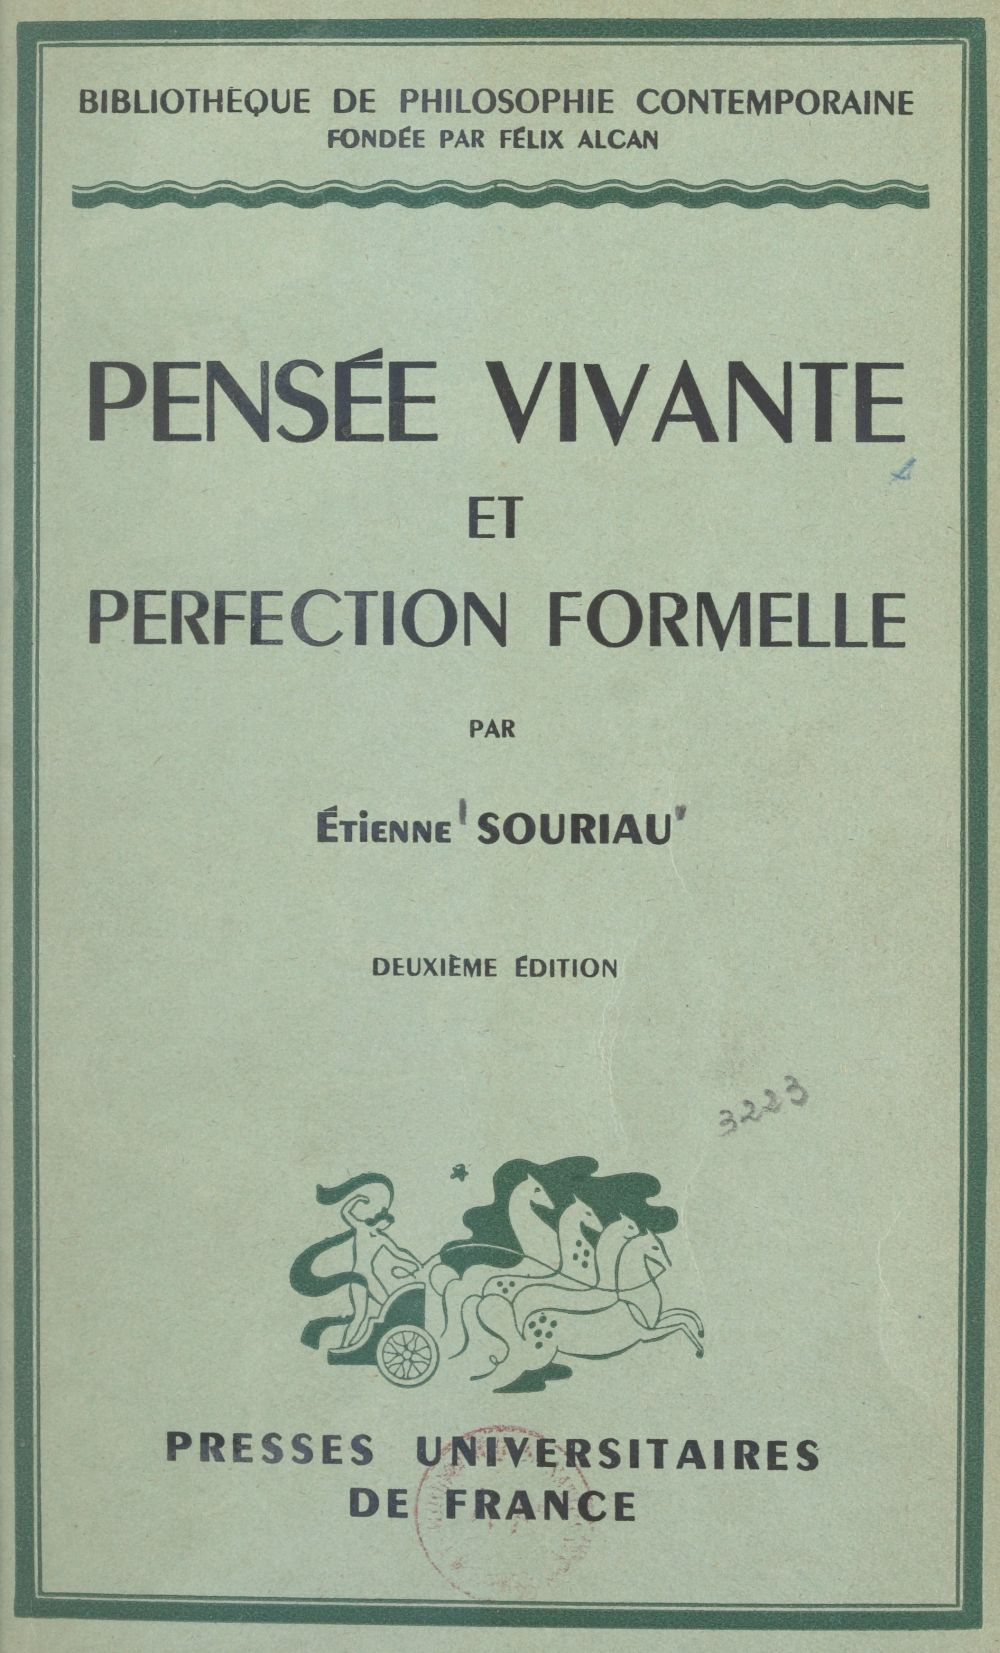 Pensée vivante et perfection formelle